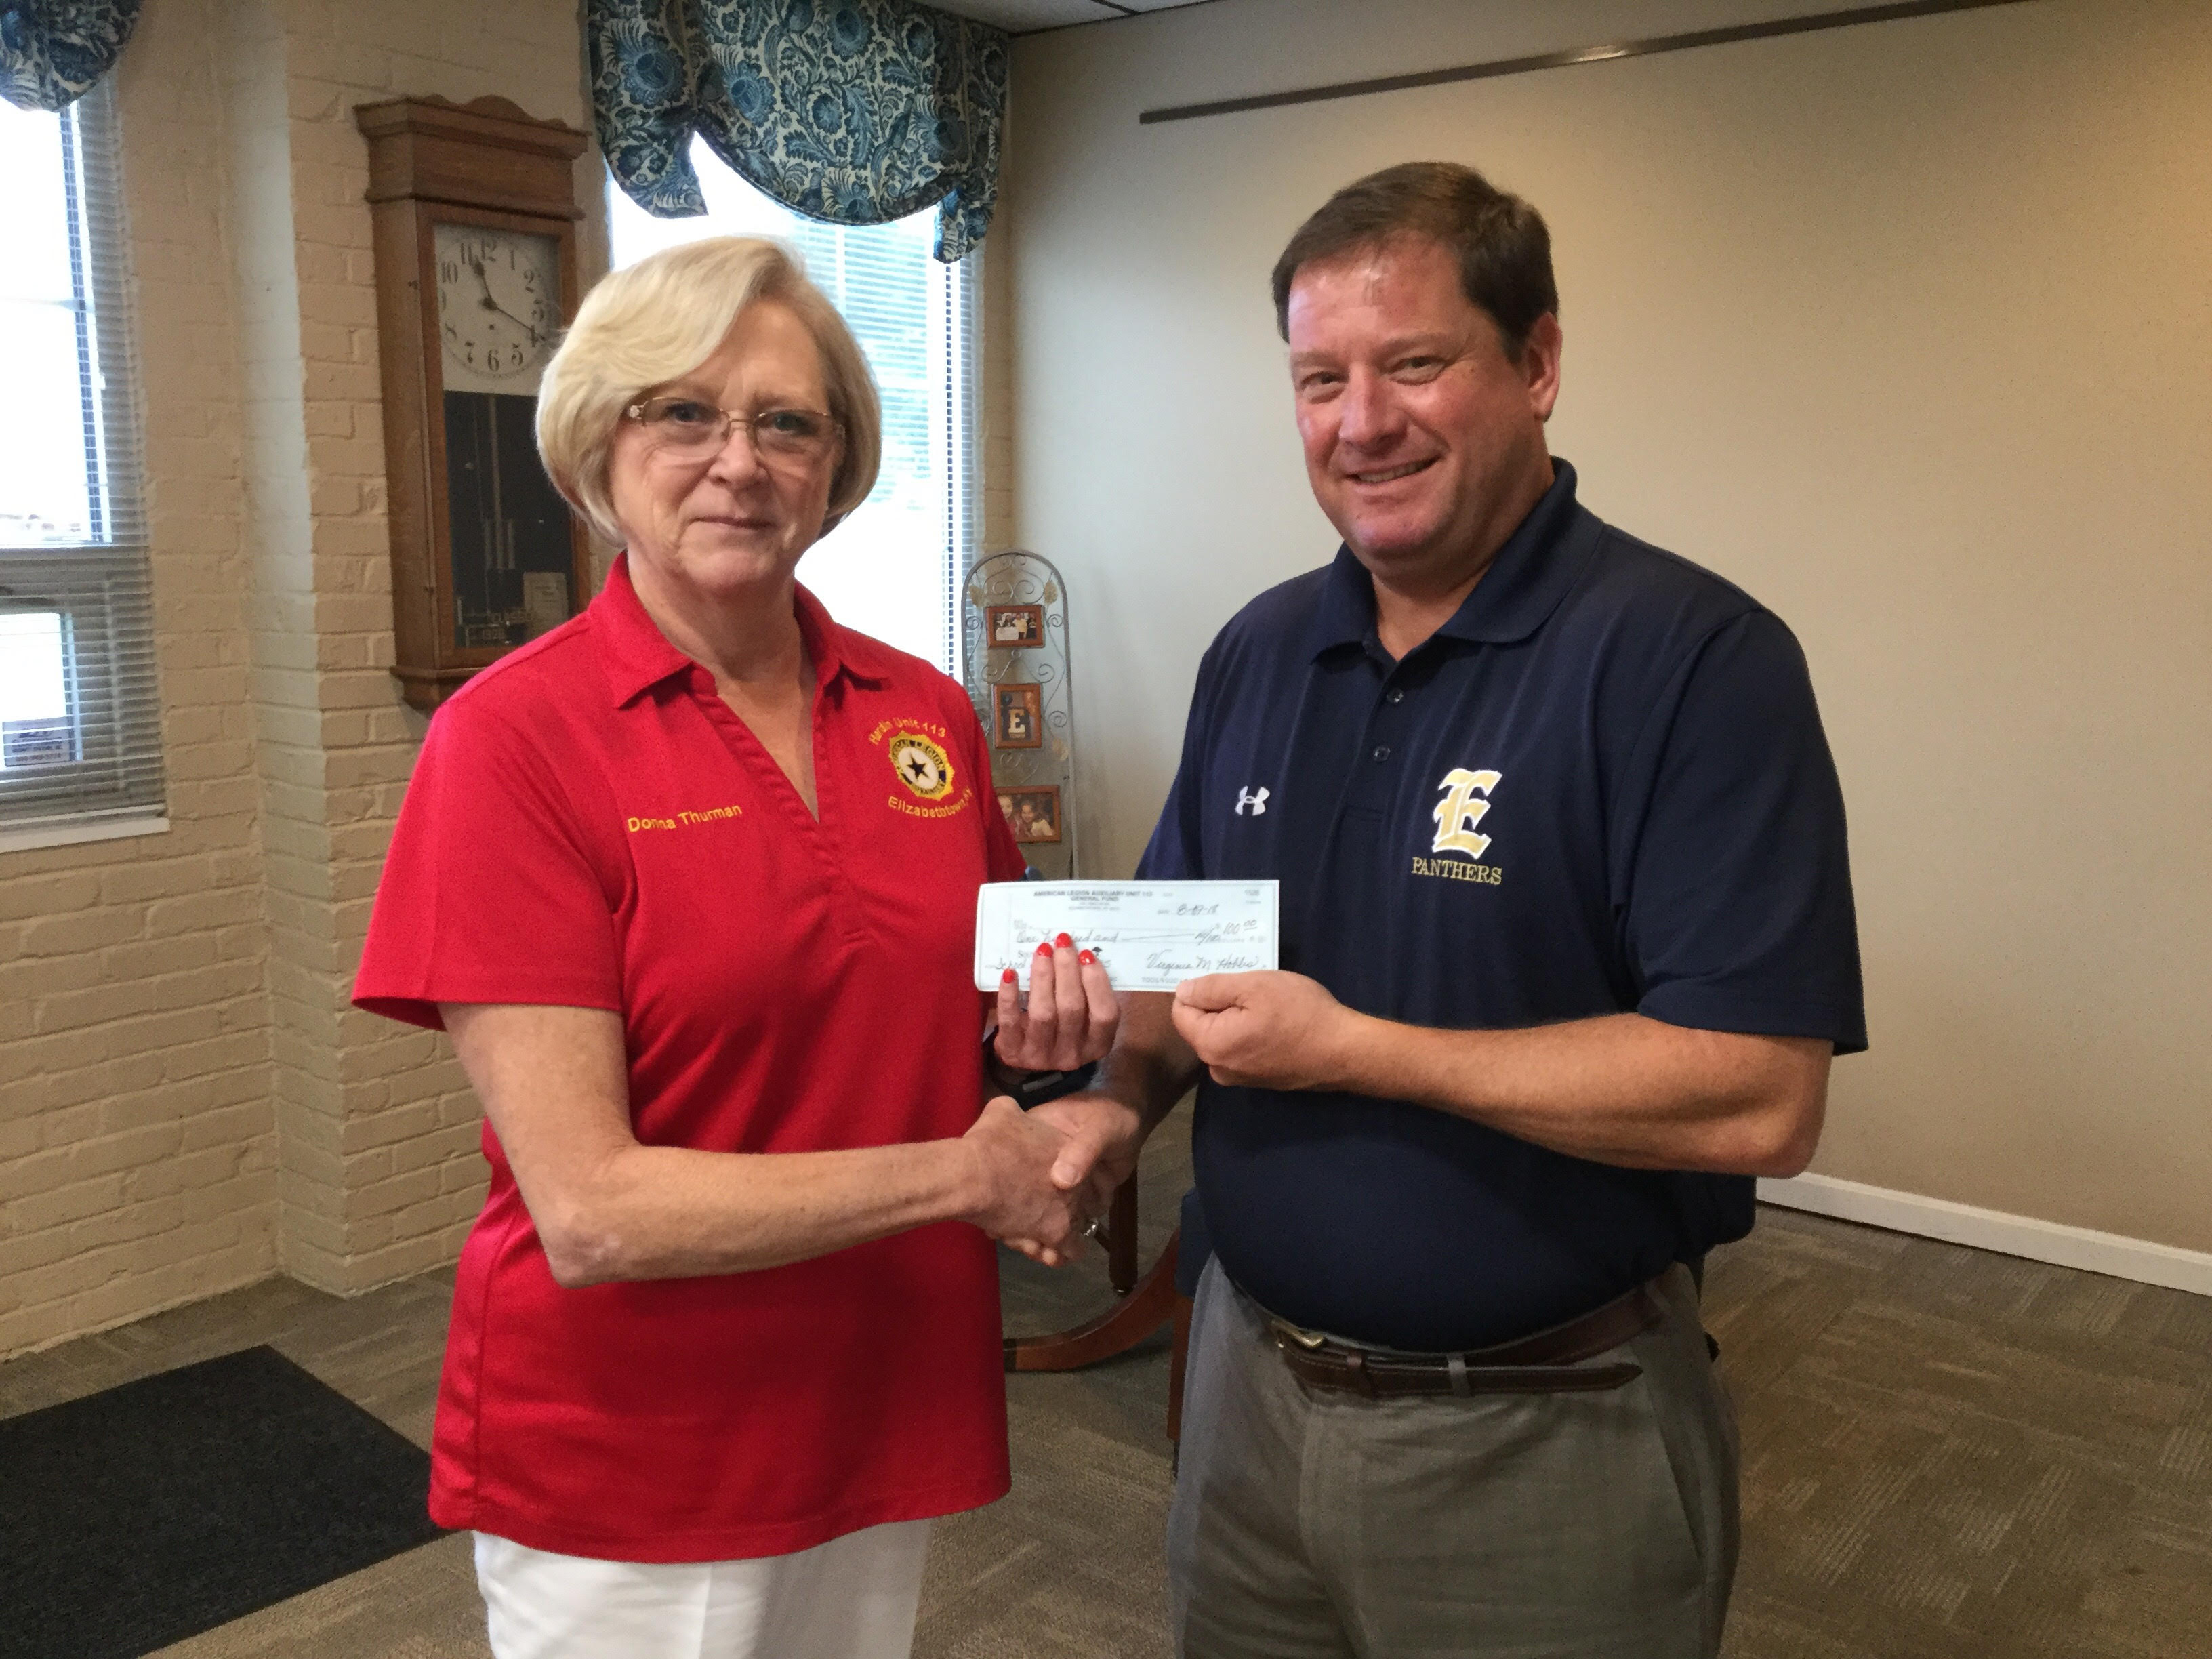 American Legion Representative and Mr. Jon Ballard, Superintendent receiving the check on behalf of EIS students.